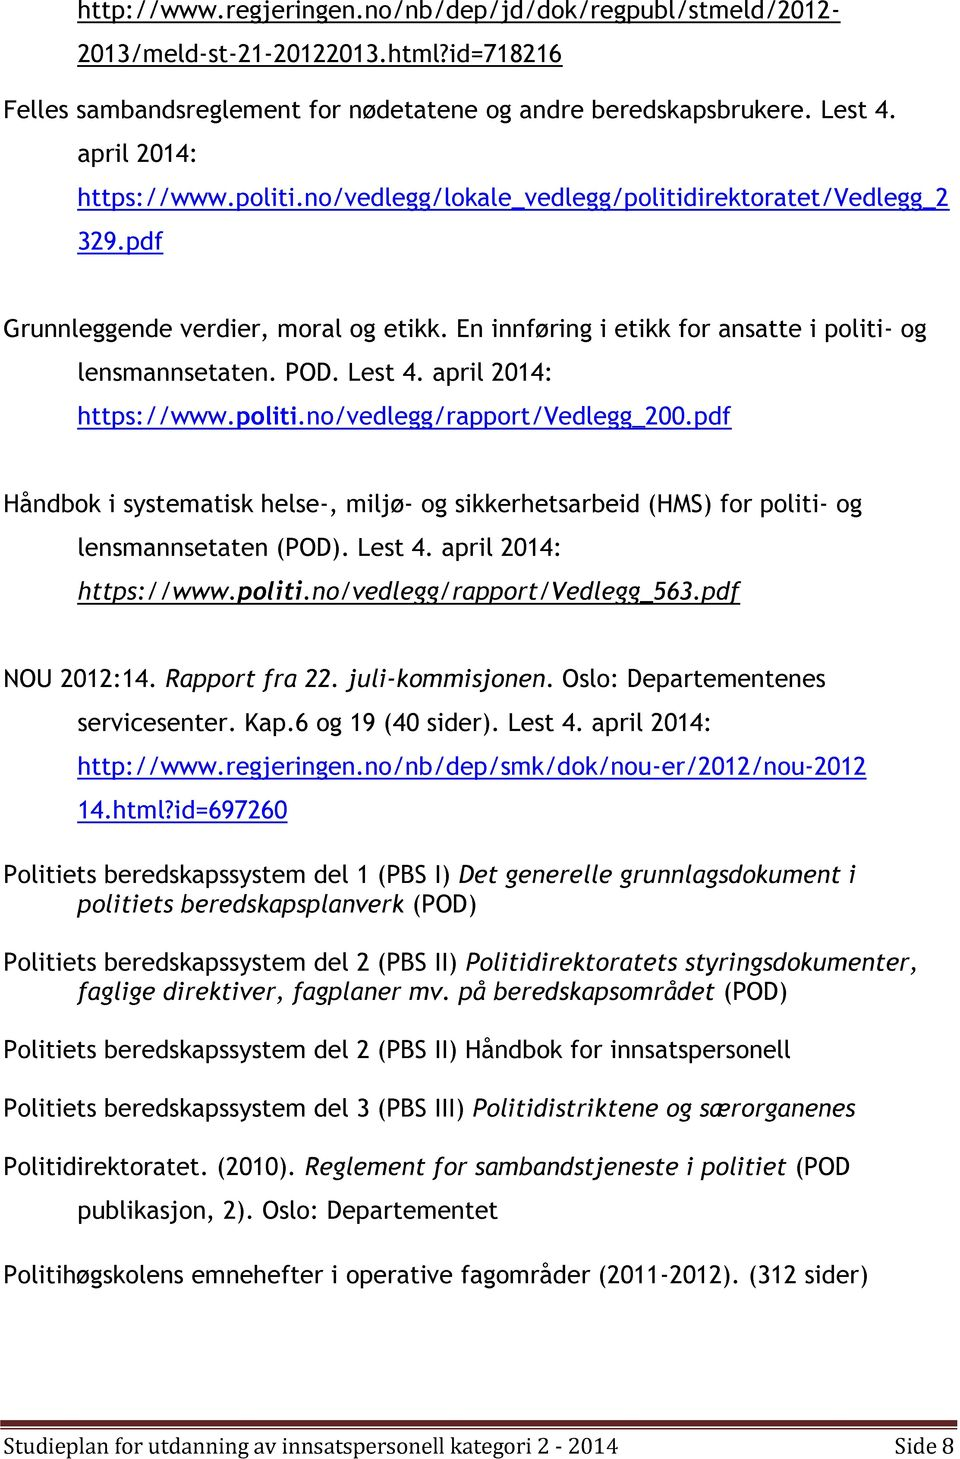 april 2014: https://www.politi.no/vedlegg/rapport/vedlegg_200.pdf Håndbok i systematisk helse-, miljø- og sikkerhetsarbeid (HMS) for politi- og lensmannsetaten (POD). Lest 4. april 2014: https://www.